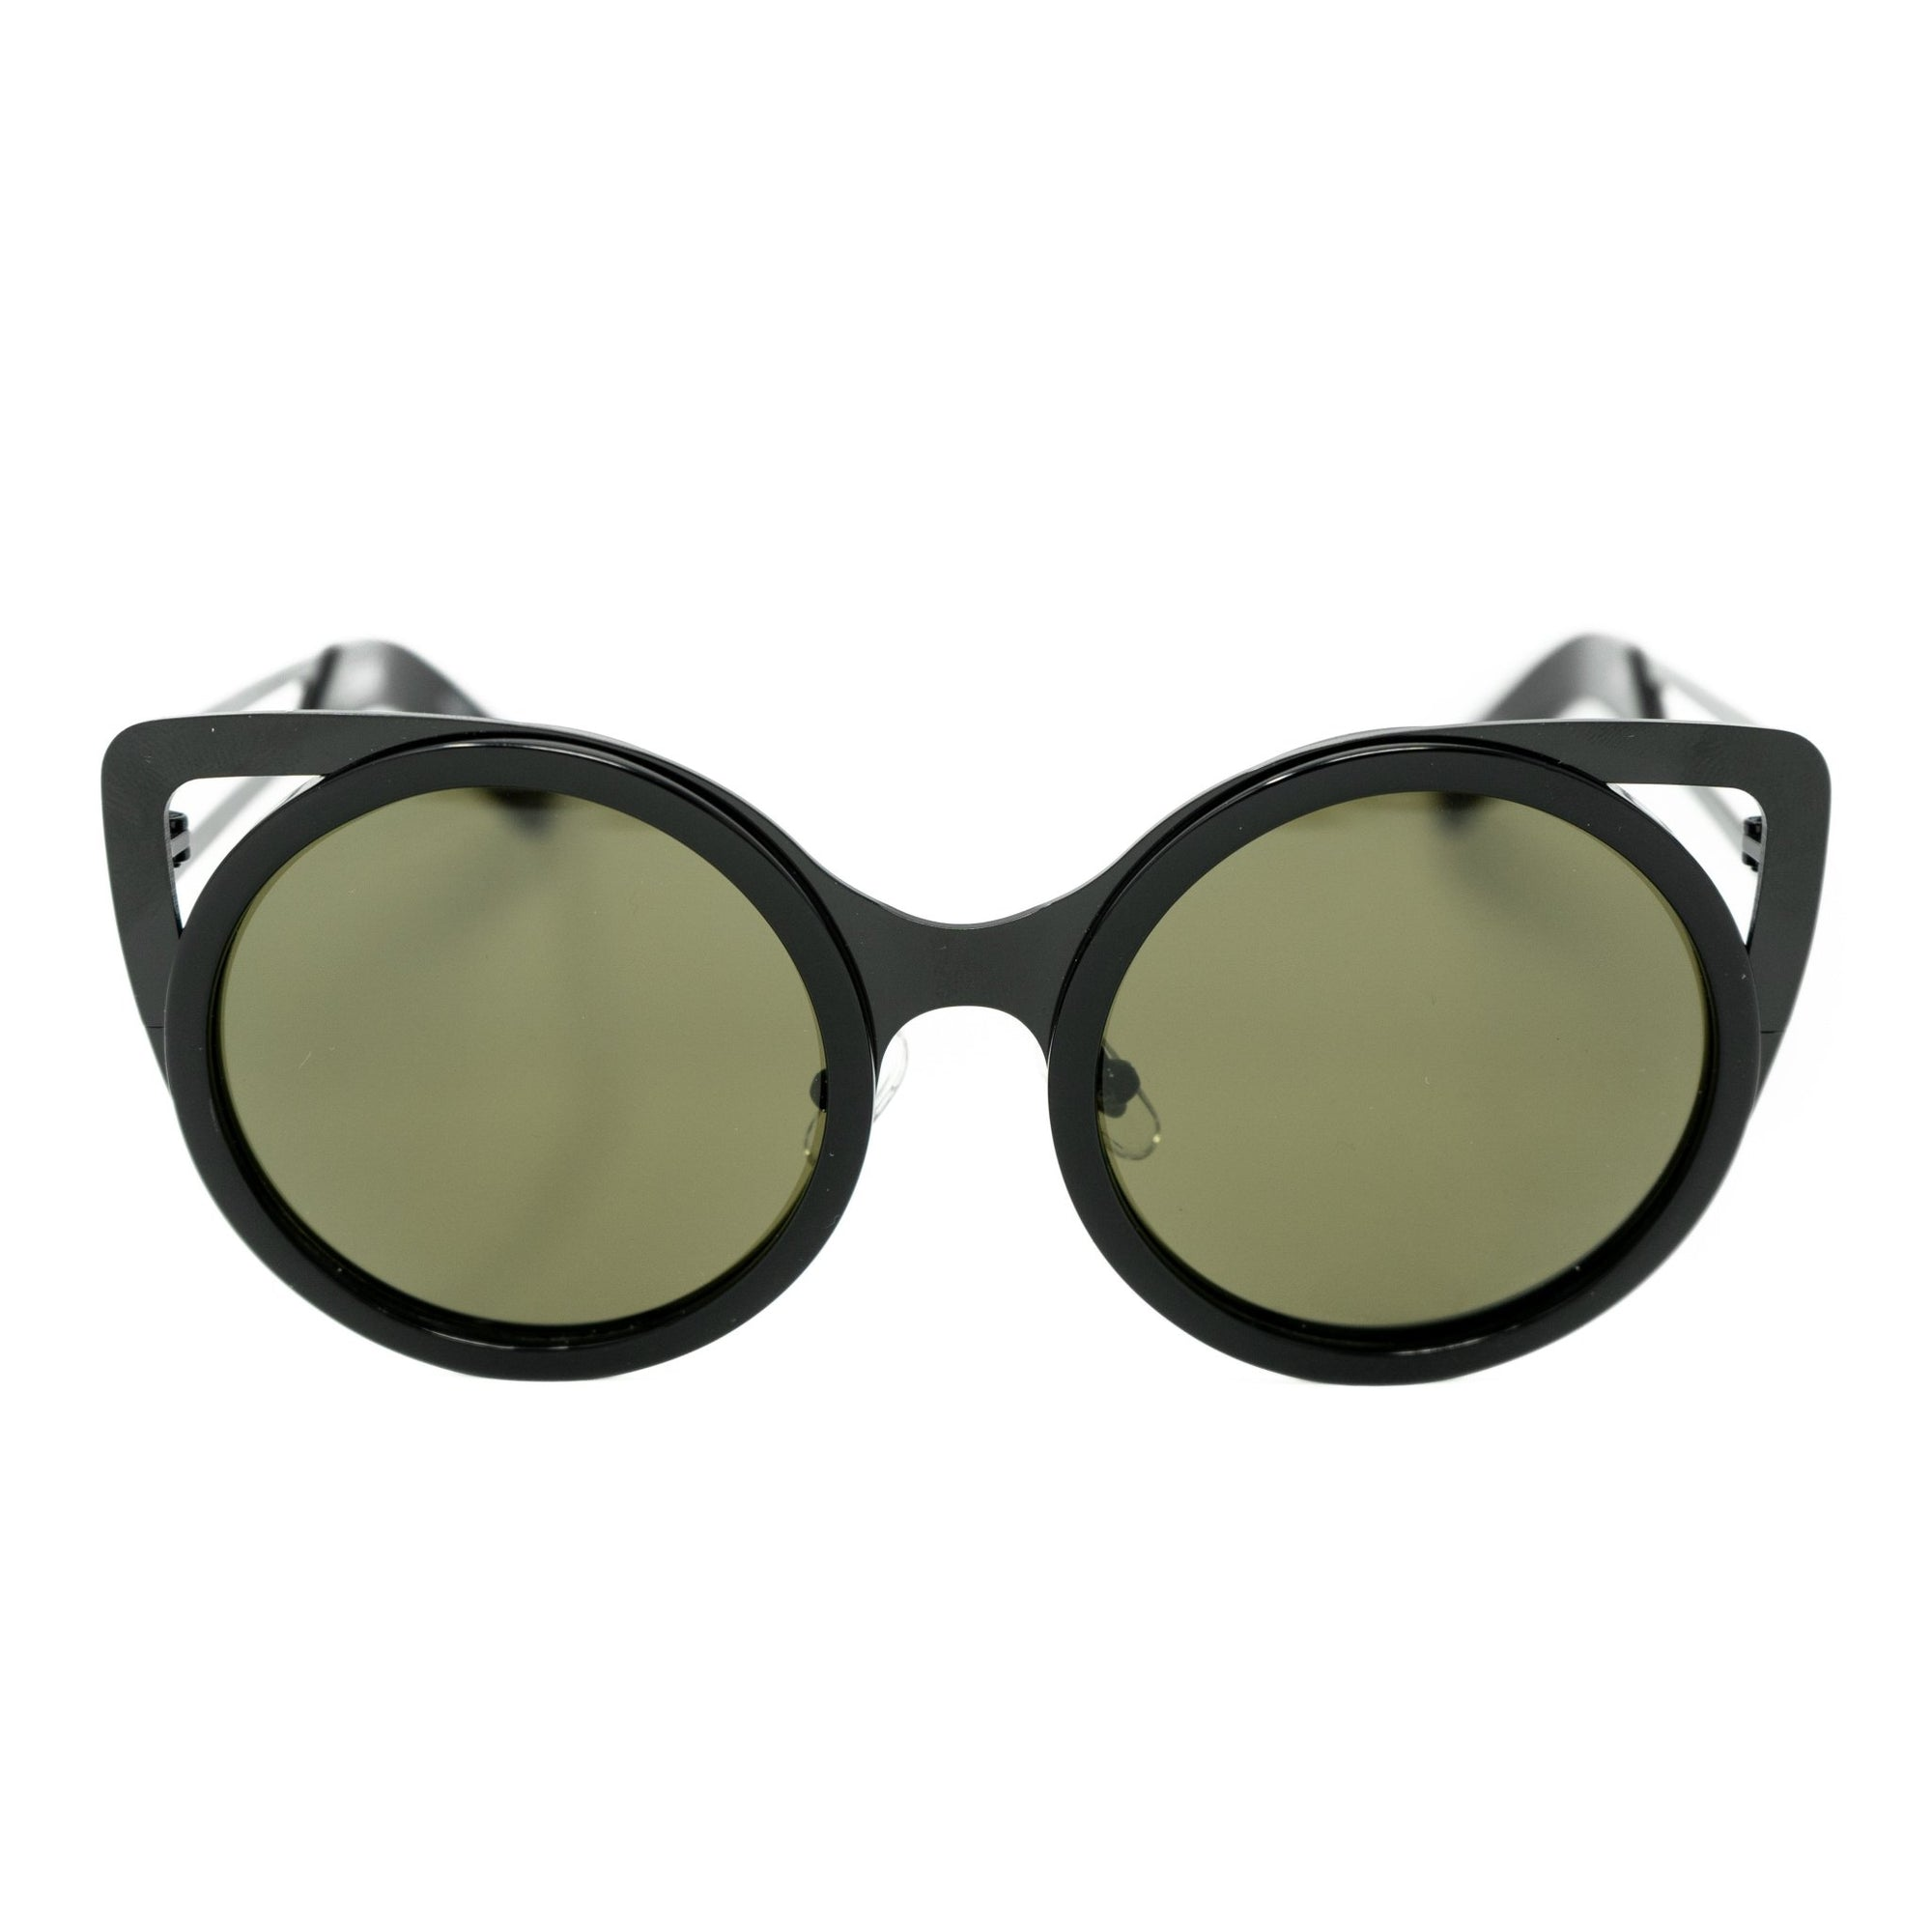 Erdem Women Sunglasses Cat Eye Slate Black with Grey Lenses Category 3 EDM4C9SUN - Watches & Crystals